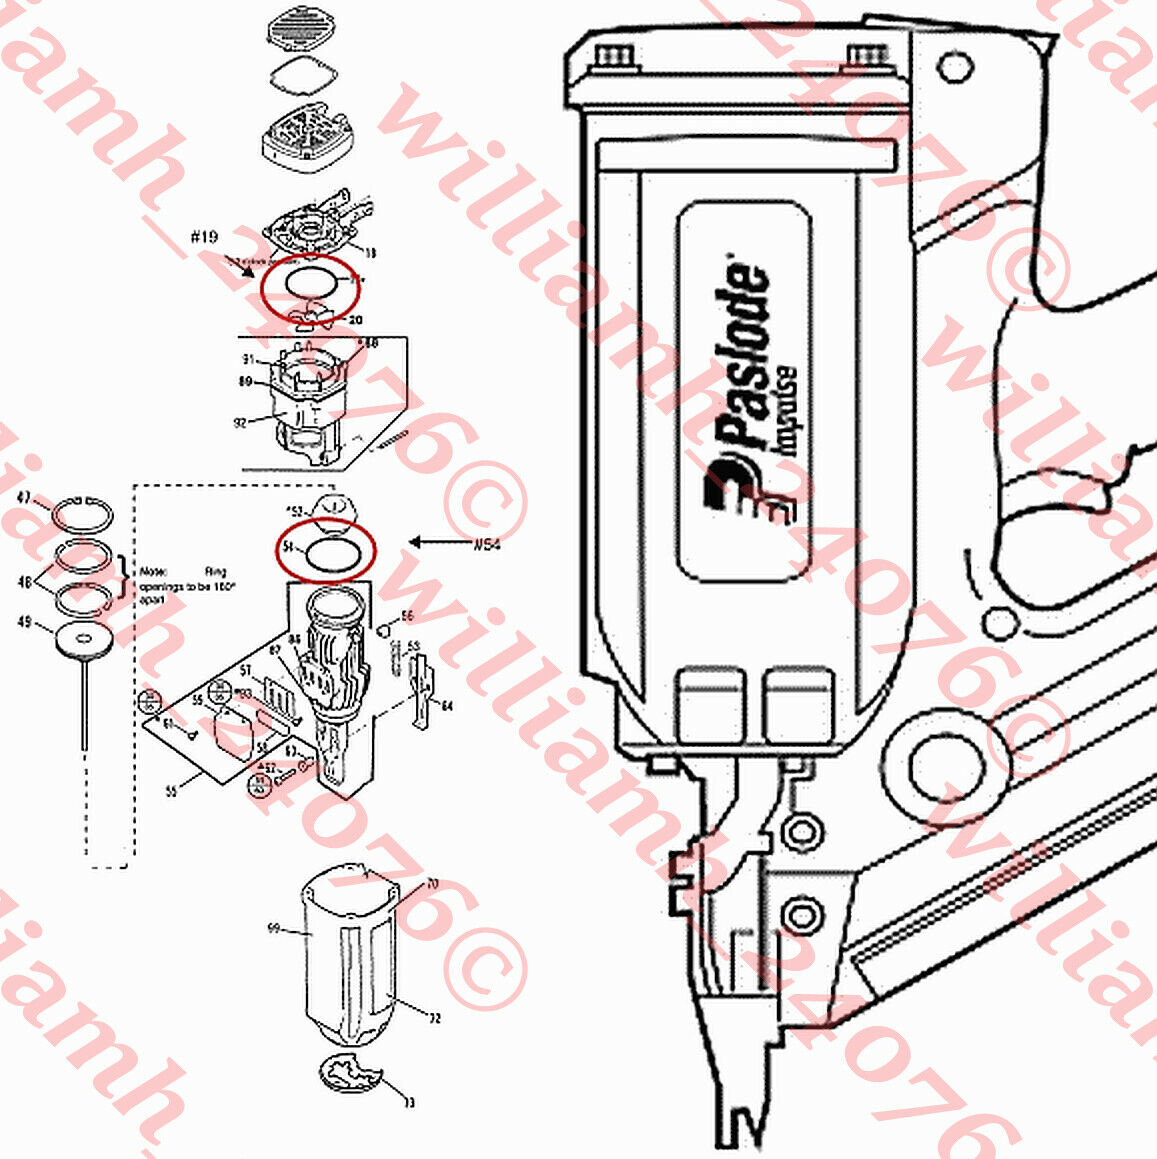 900420 williamh_24076 Paslode Cordless 900420 O-ring Kit Parts